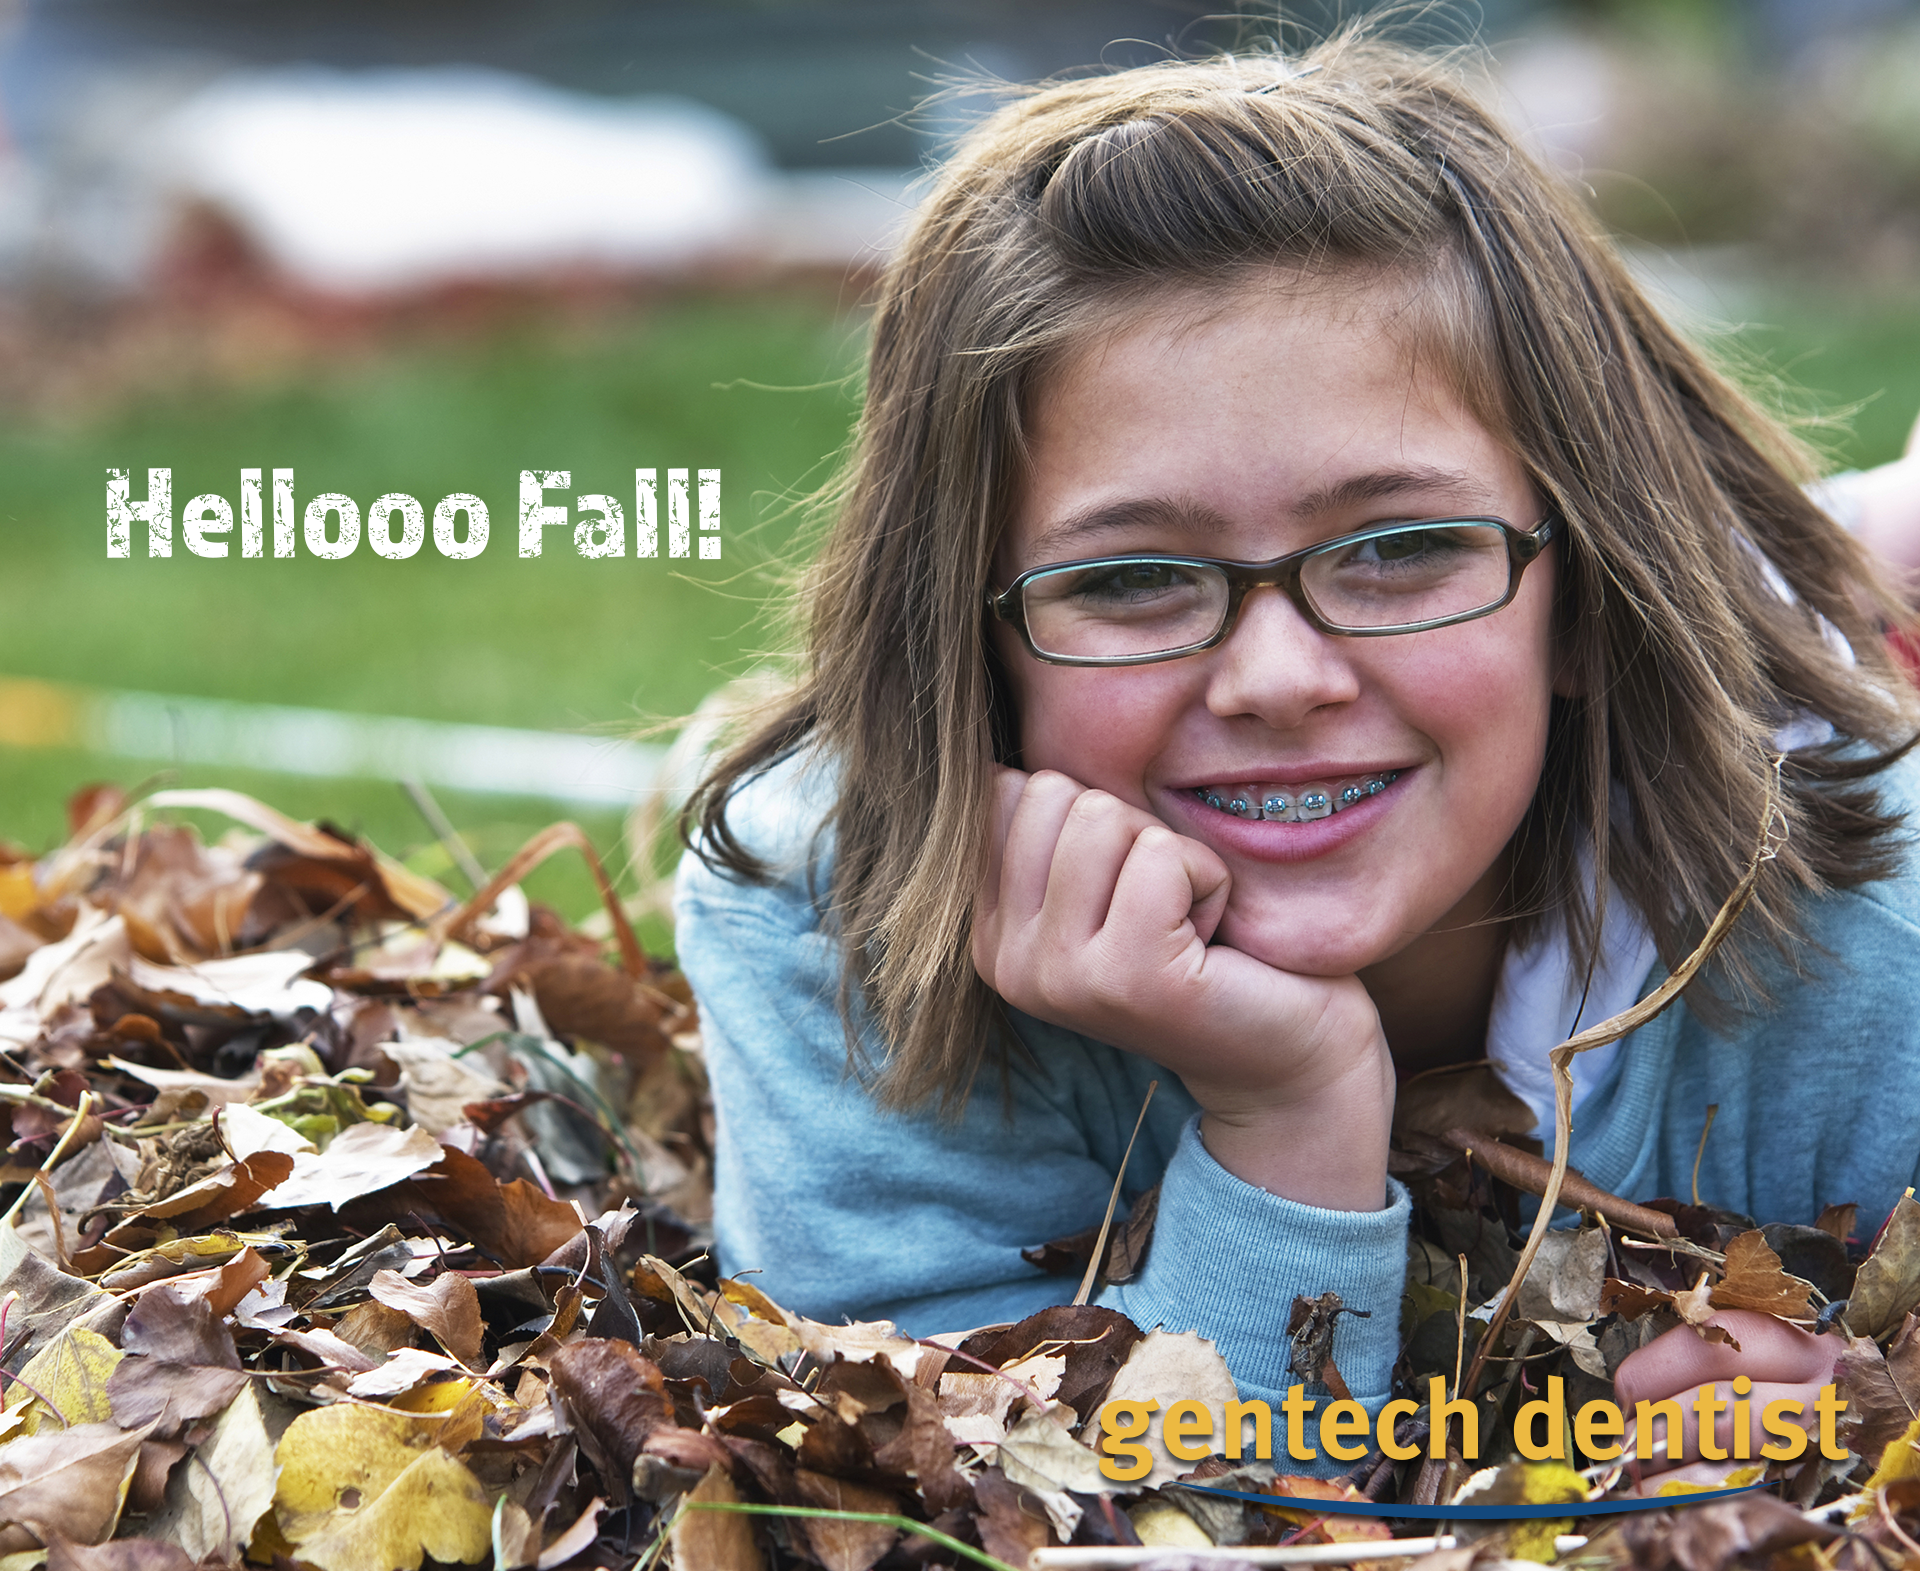 Gentech Dentist wishes you a happy Fall!